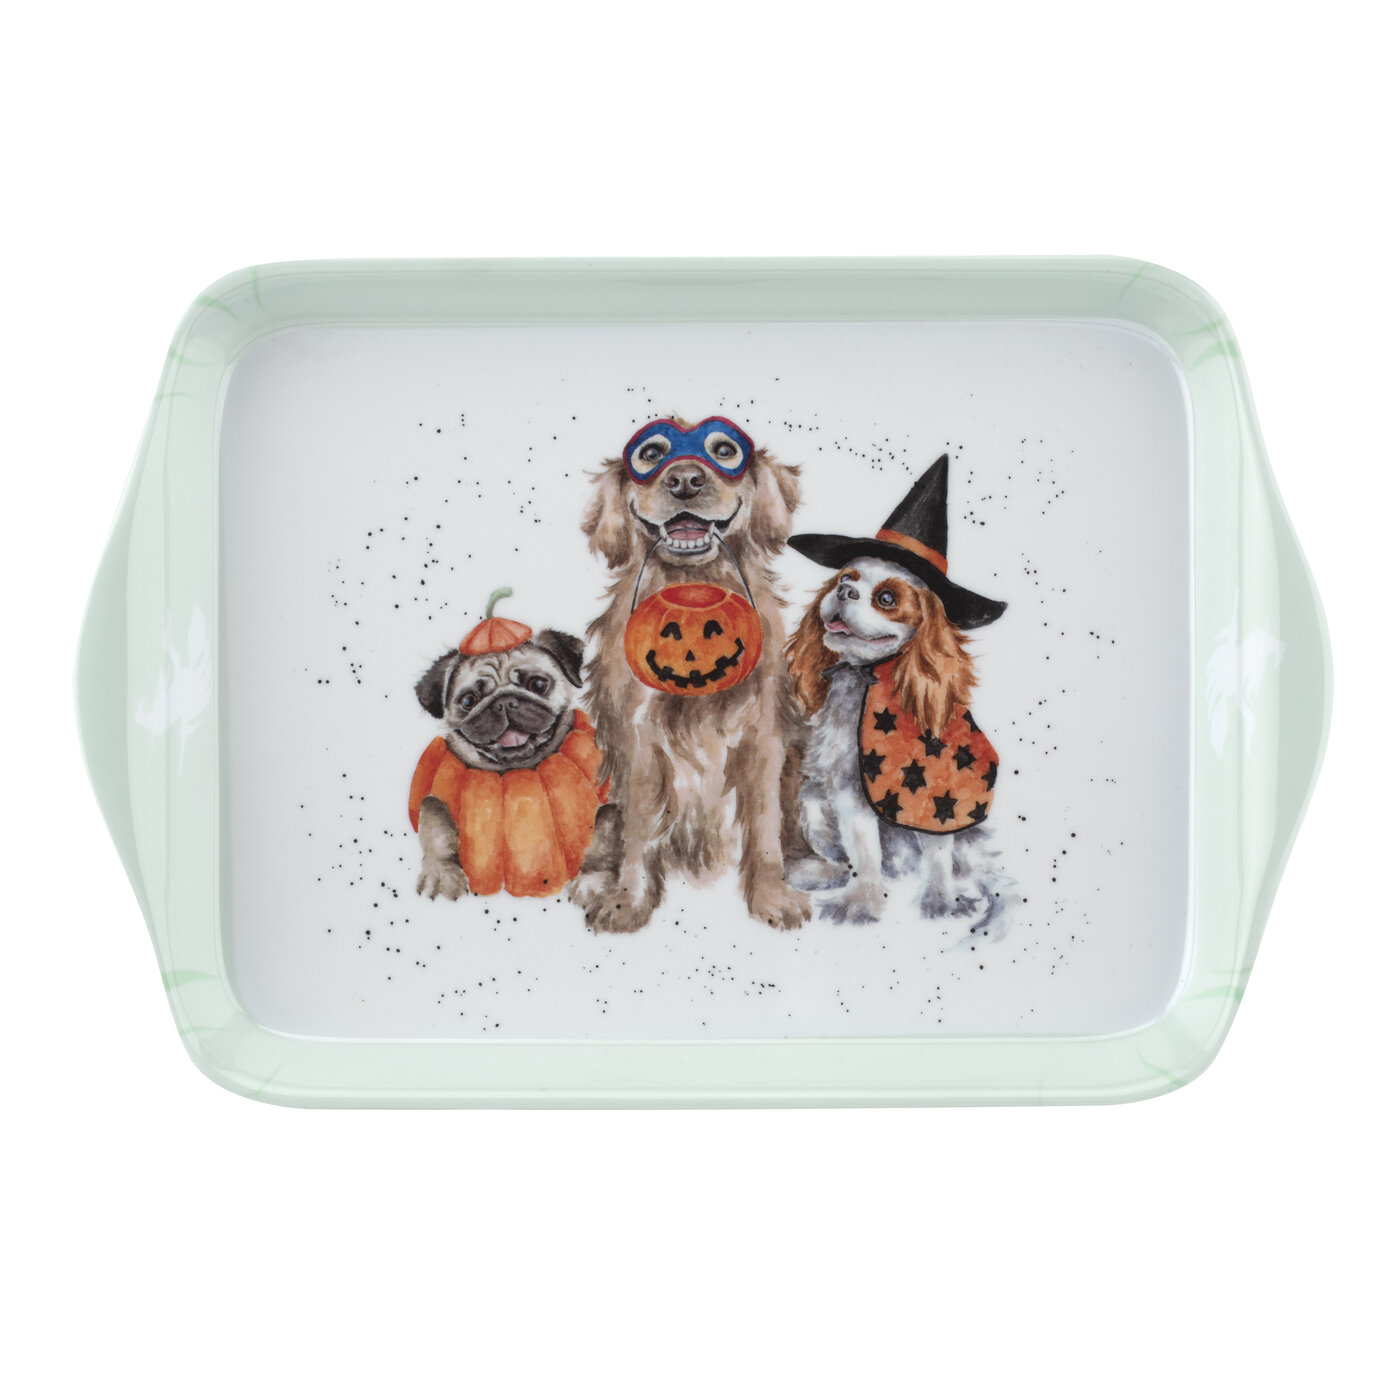 Pimpernel Wrendale Designs 3 Piece Mug & Tray Set (Trick or Treat) image number 3